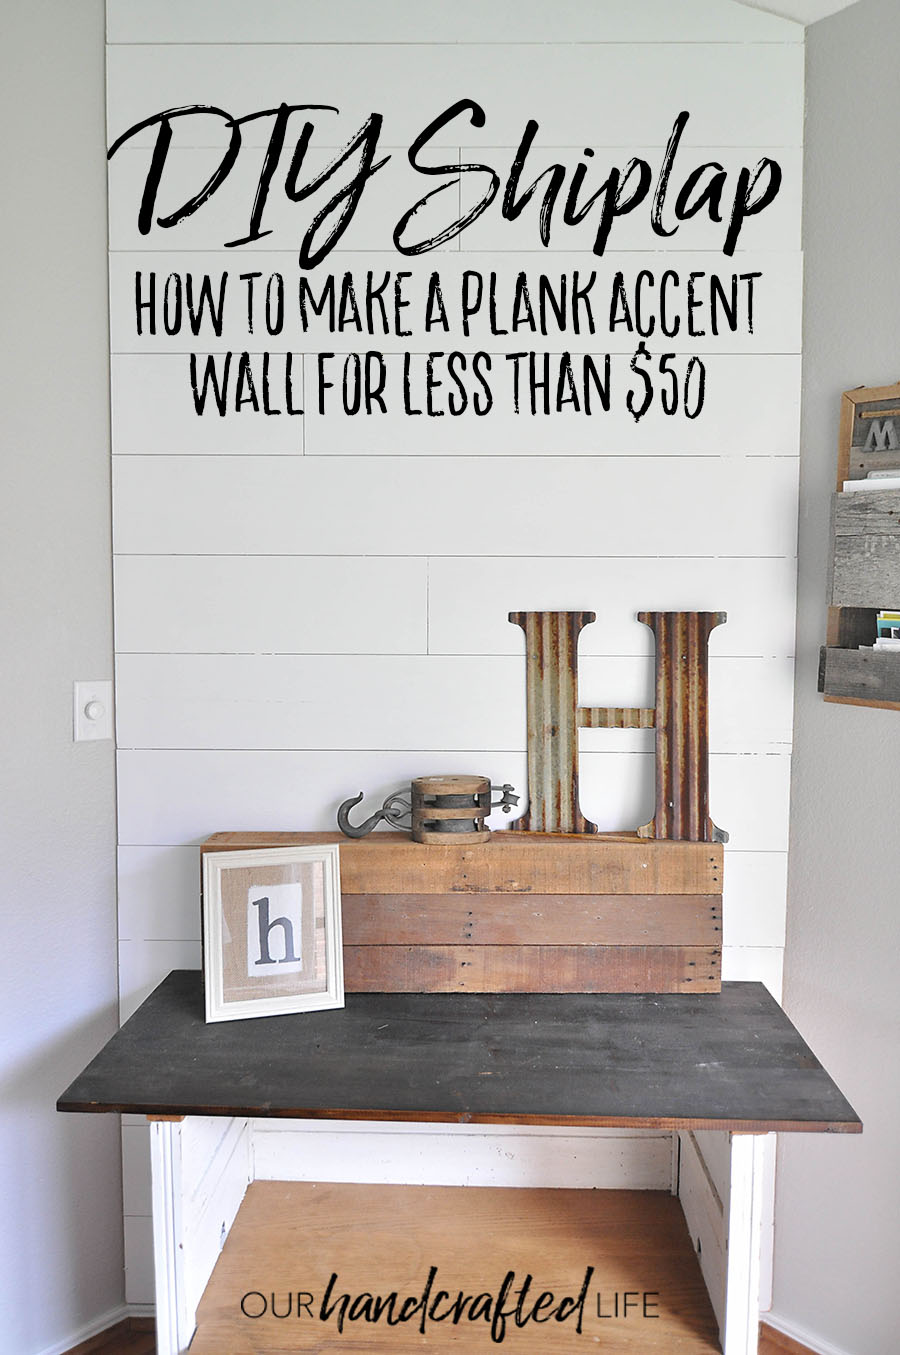 How to Make a Plank Wall - DIY Shiplap - Our Handcrafted Life Tall 2